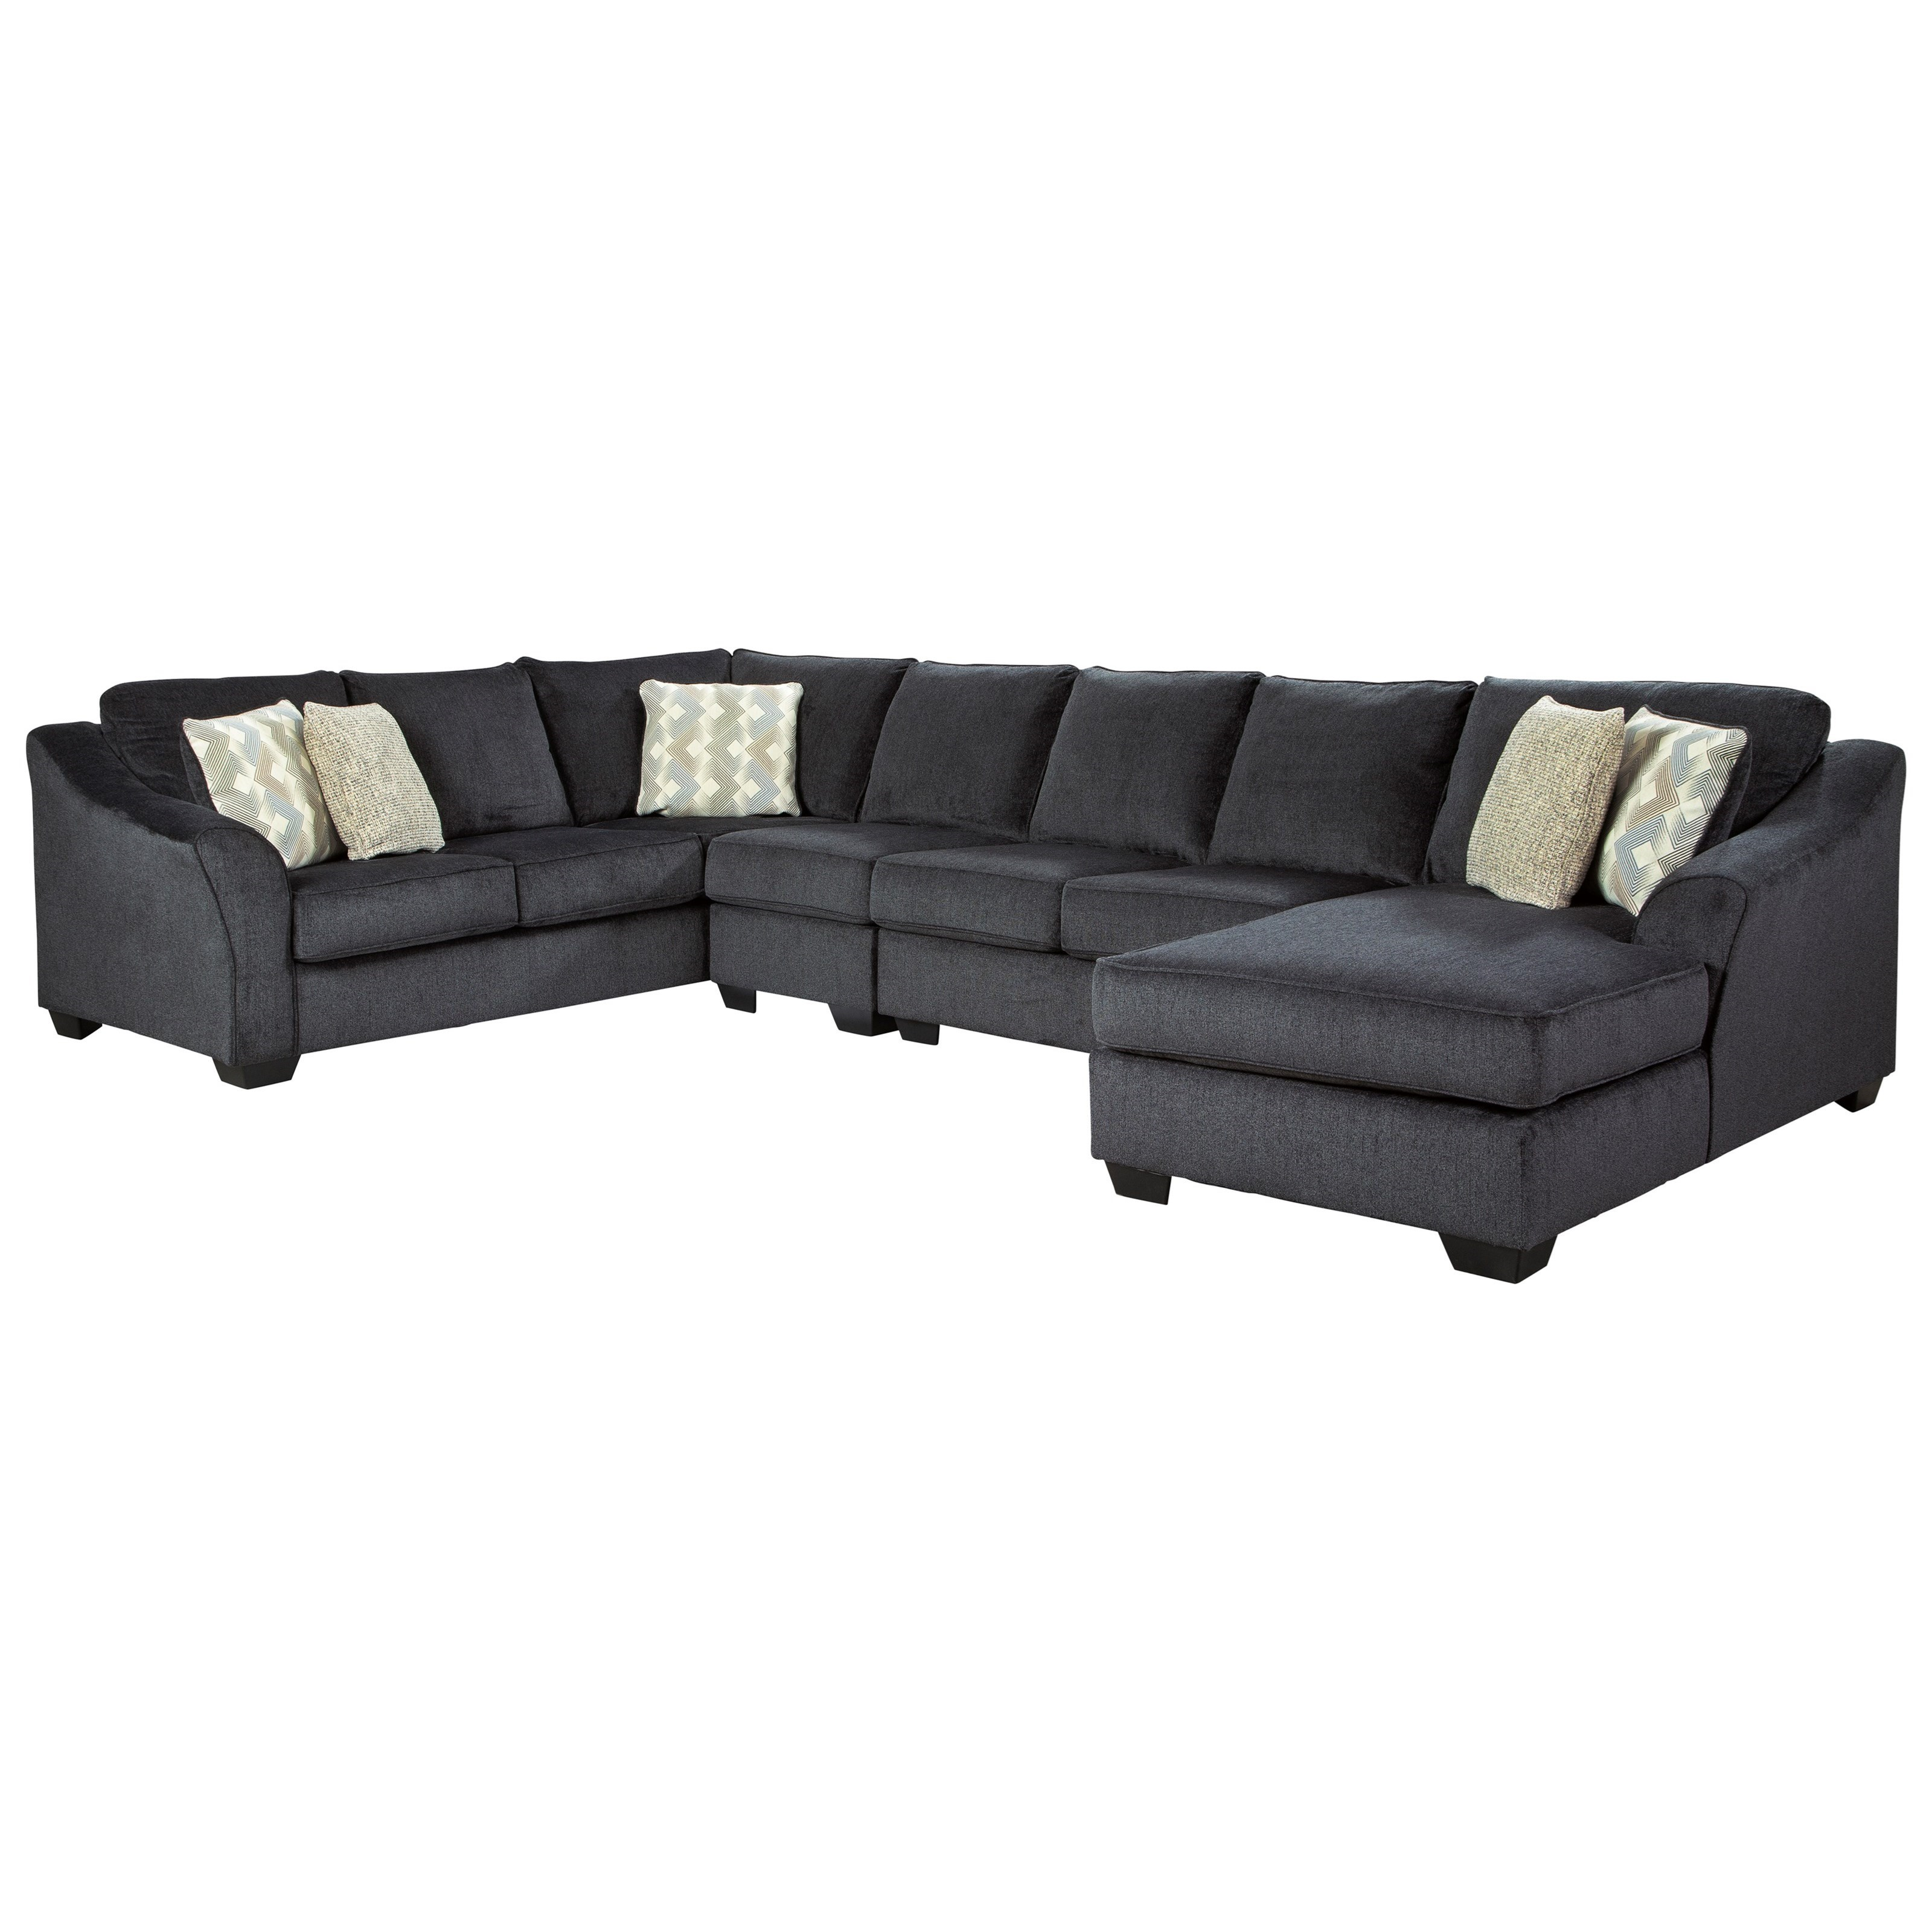 Eltmann 4-Piece Sectional by Signature at Walker's Furniture